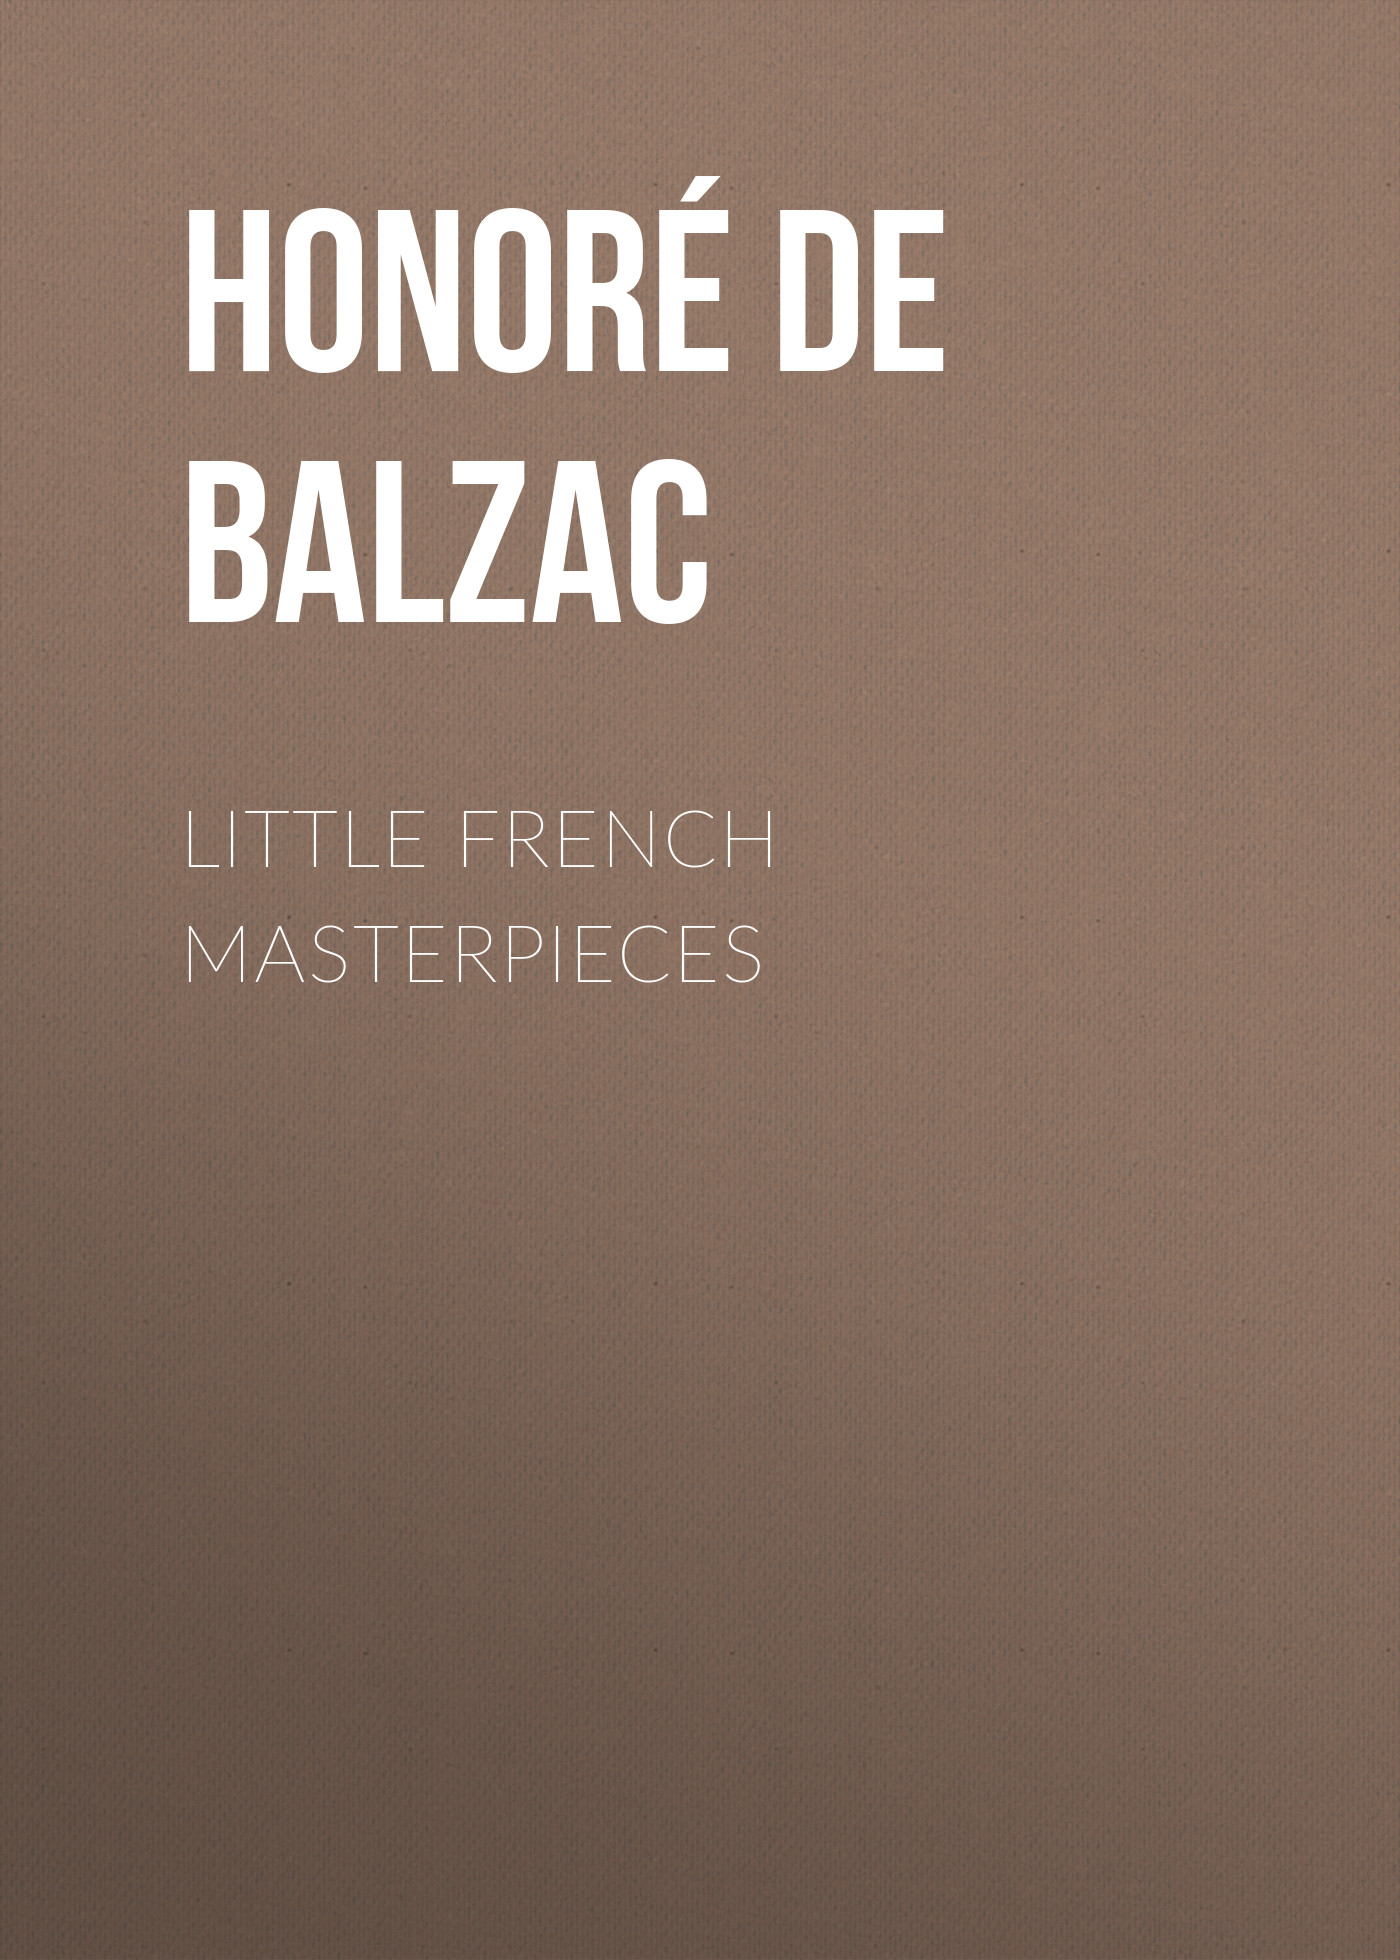 little french masterpieces